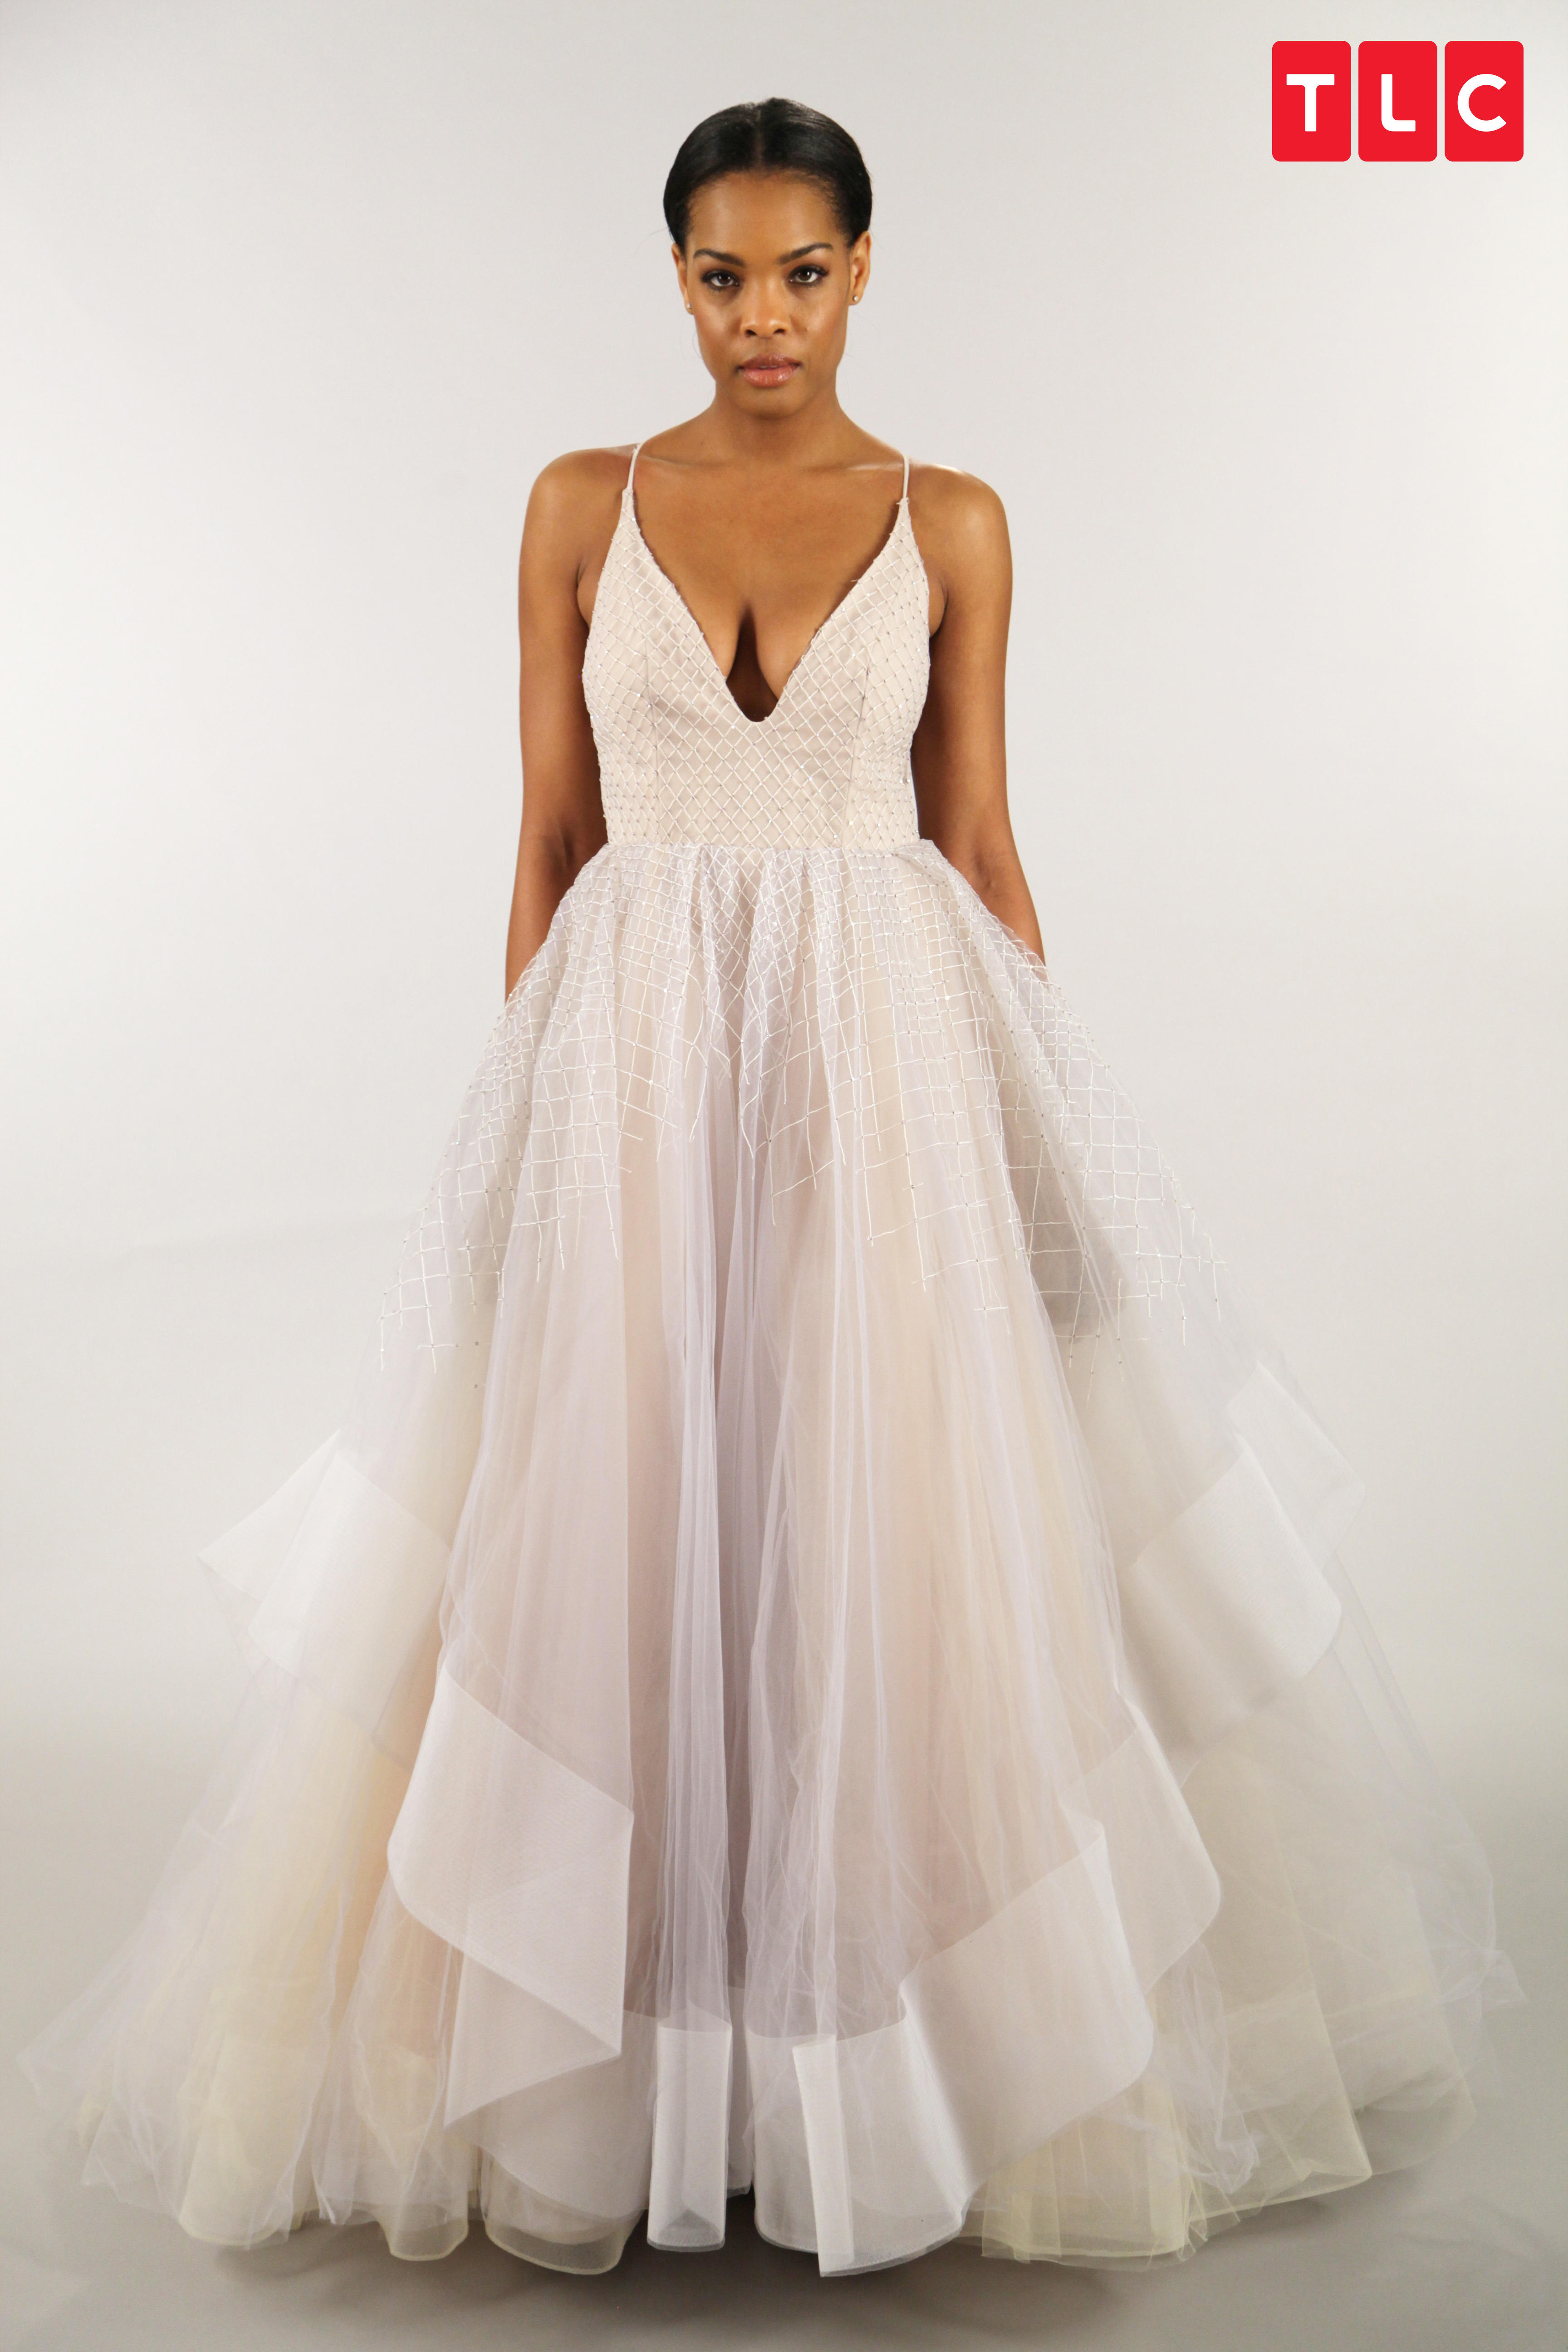 Wunderbar Dresses That Can Be Used As A Wedding Dress Fotos ...